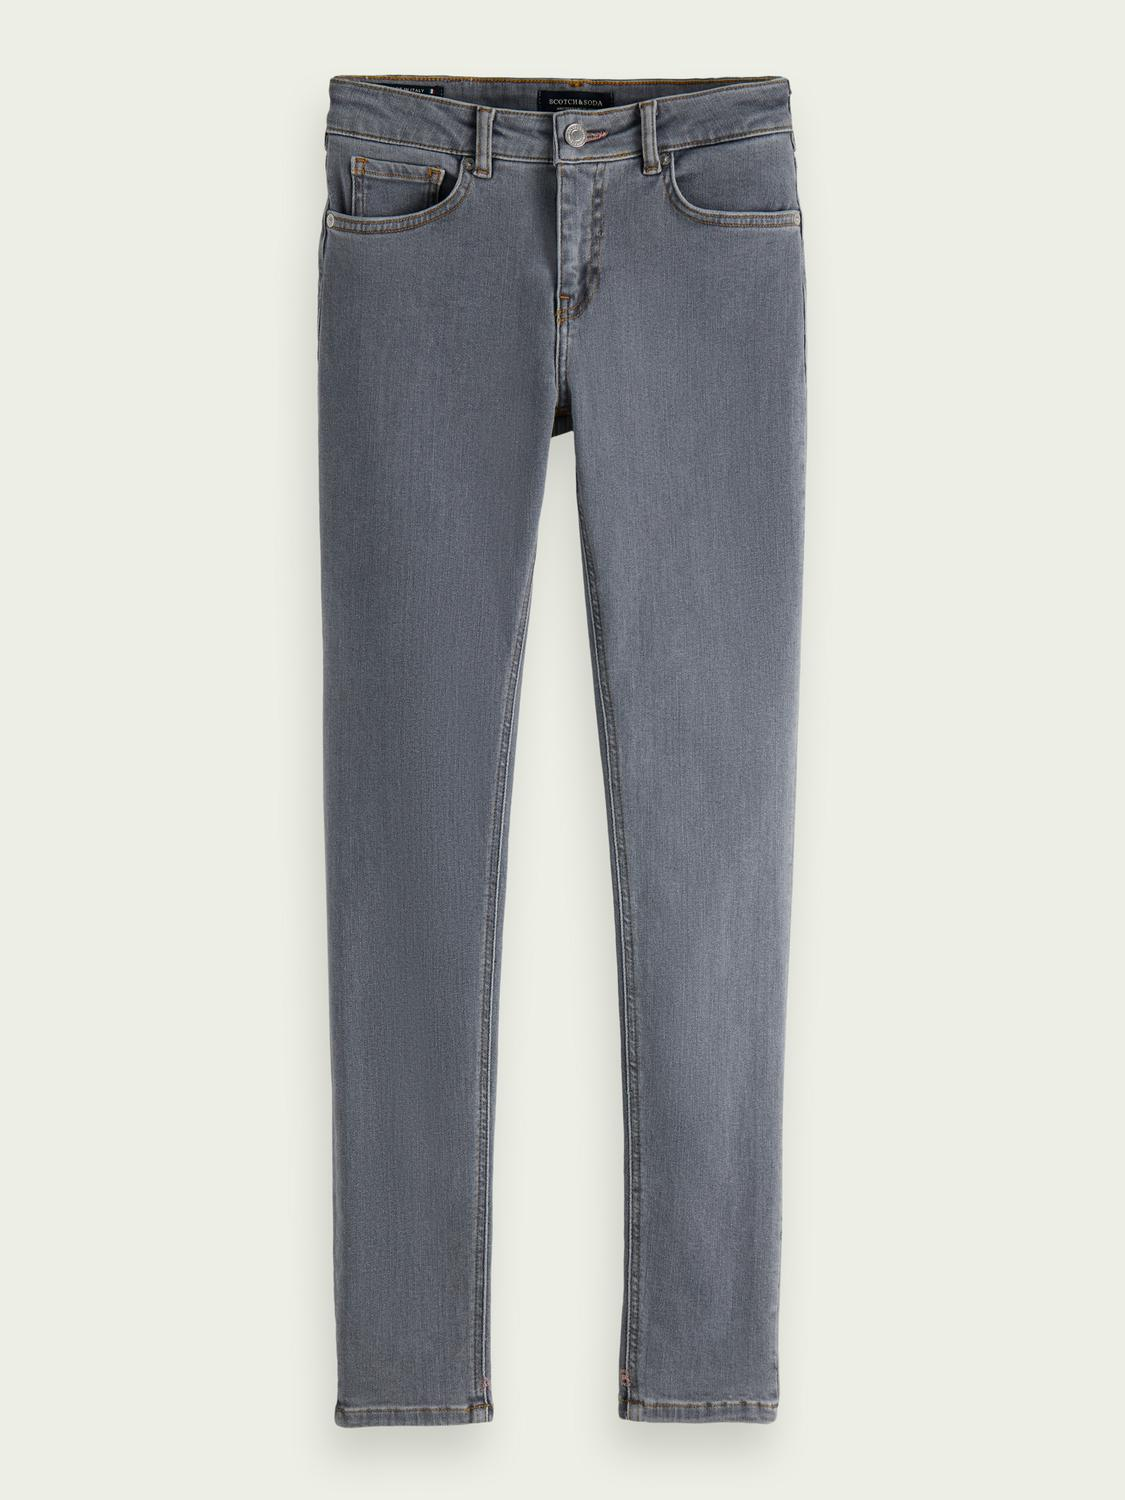 Bohemienne skinny-fit jeans —Nowhere to go 5